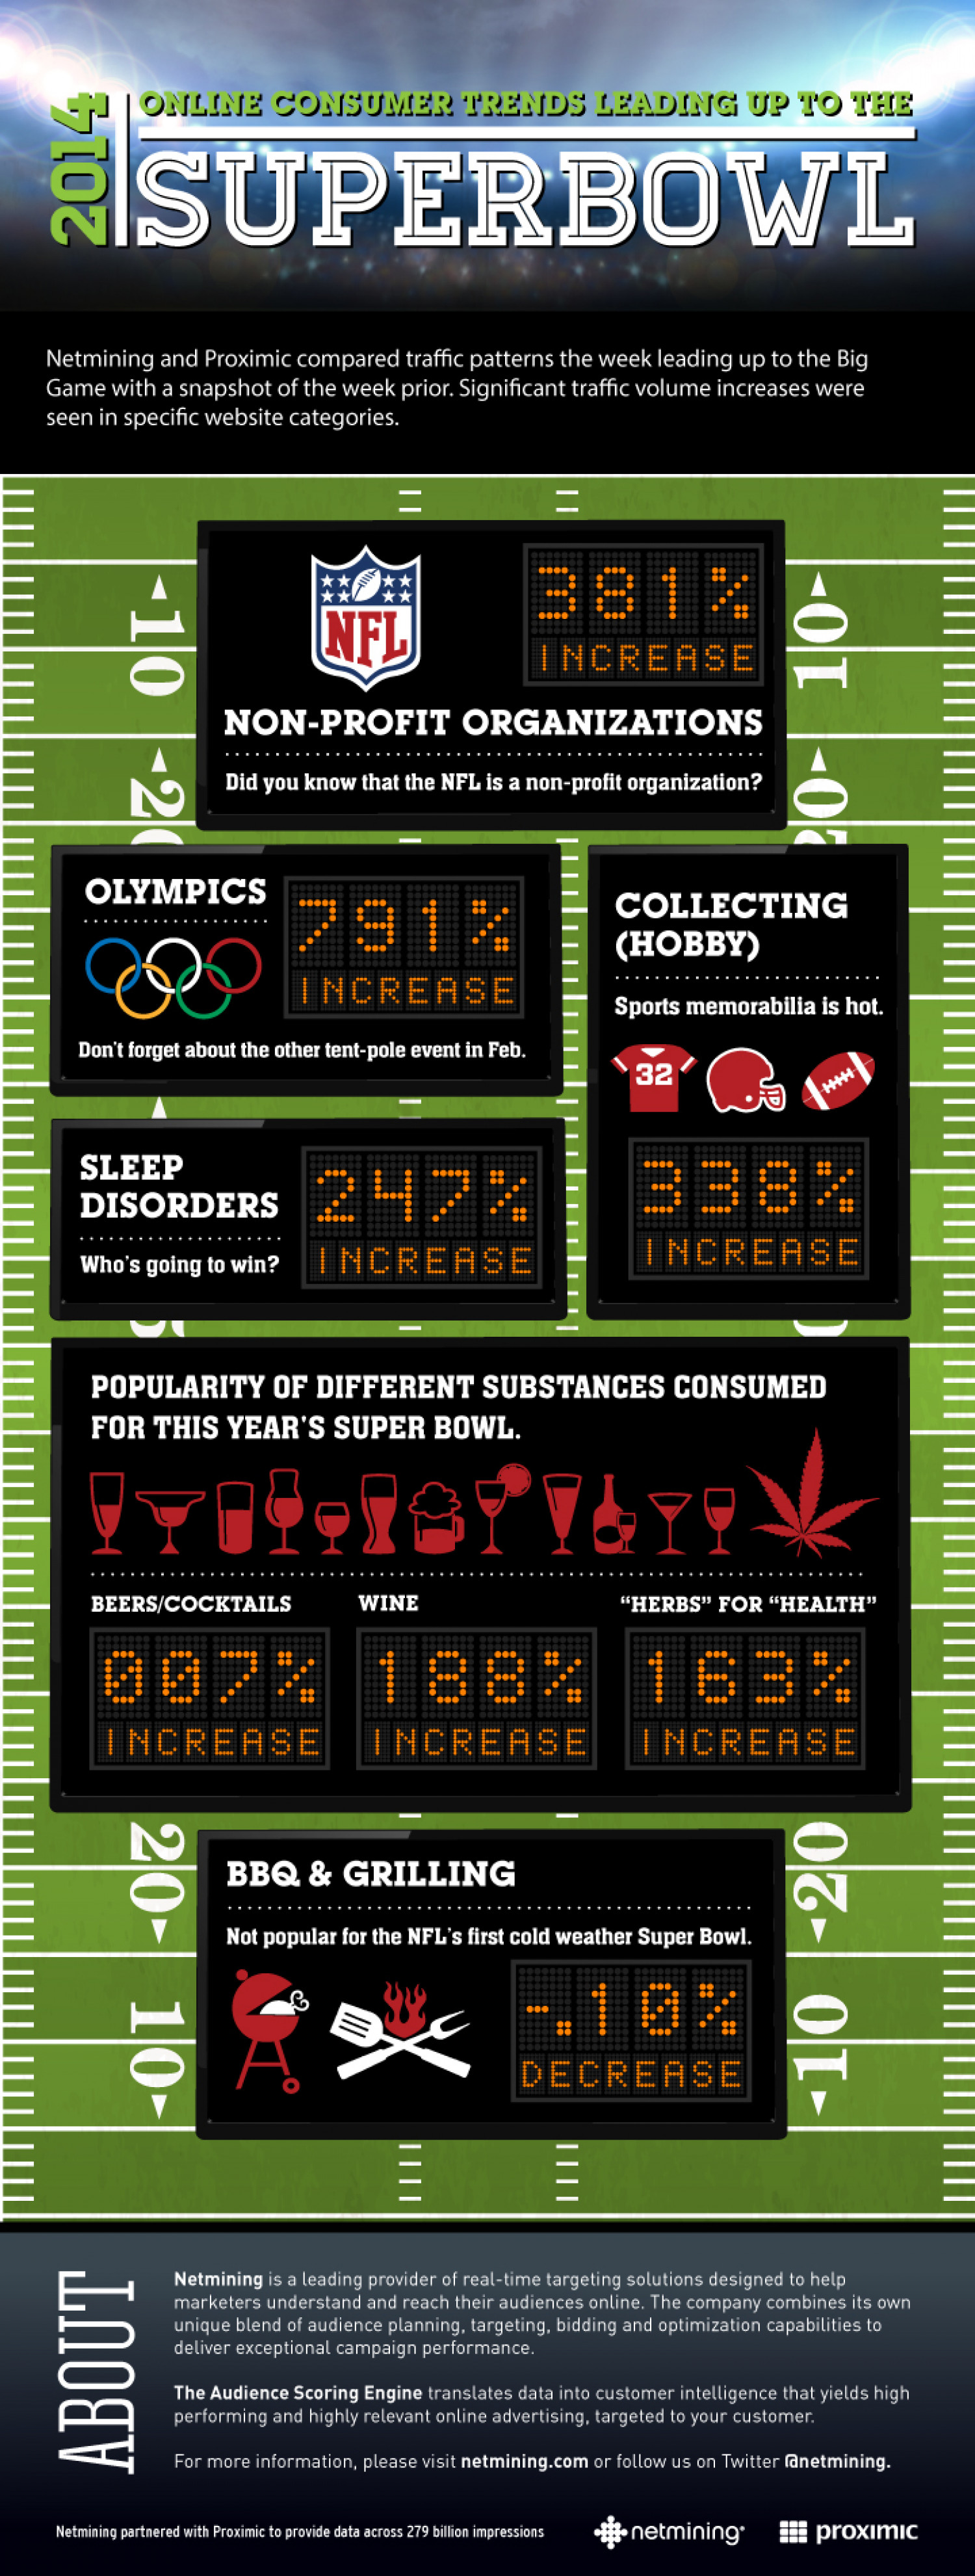 2014 Online Consumer Trends Leading Up To The Superbowl Infographic